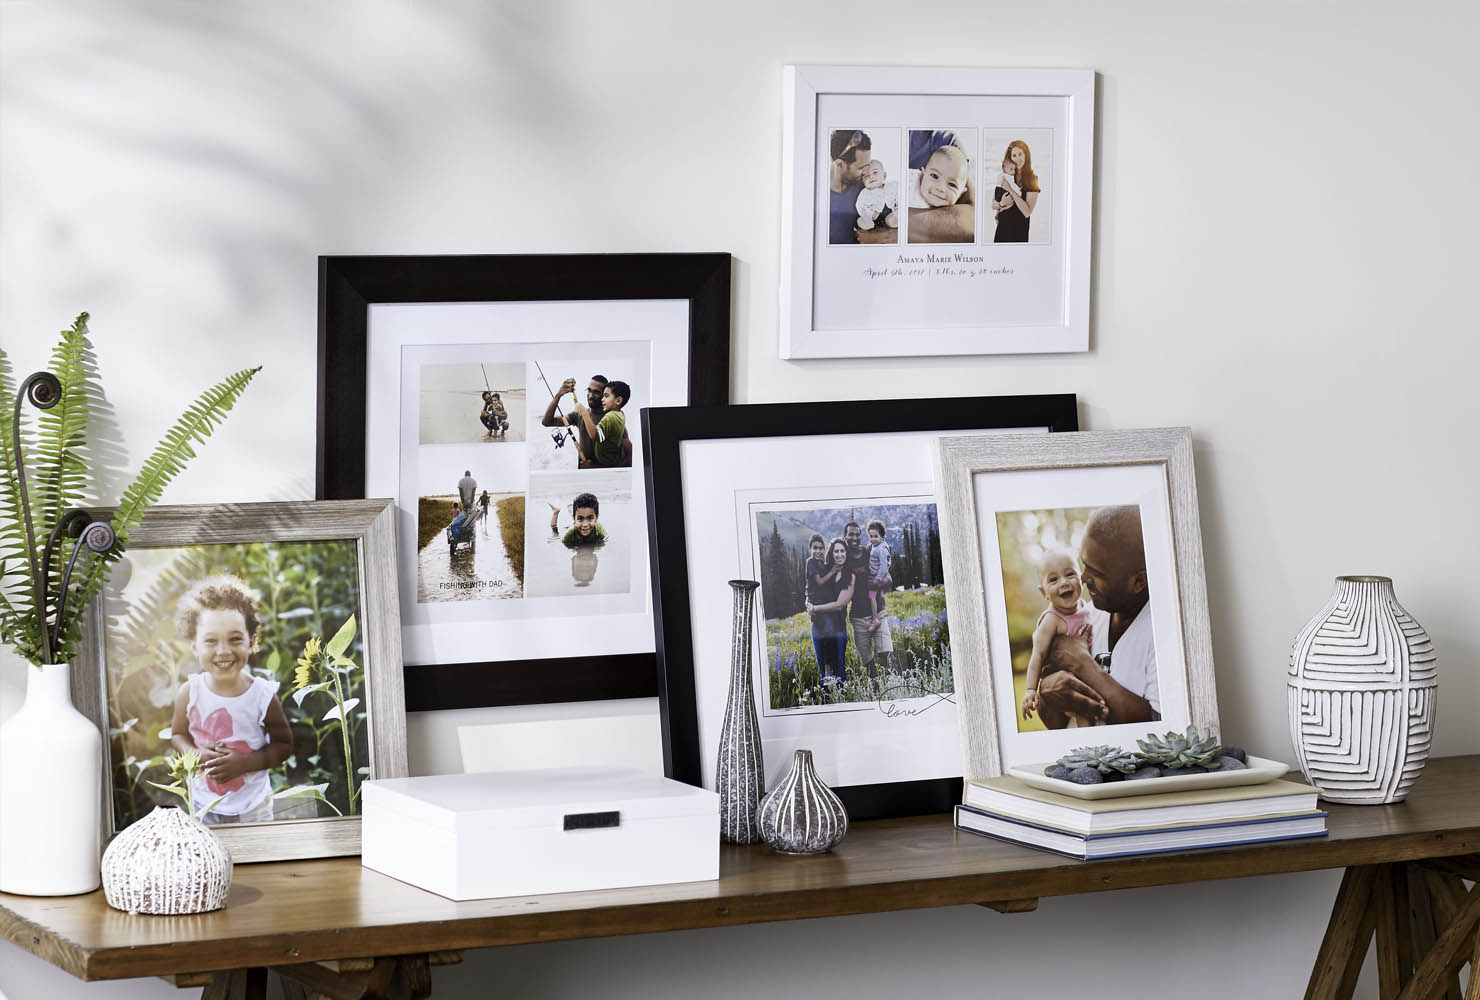 Framed print photo collages